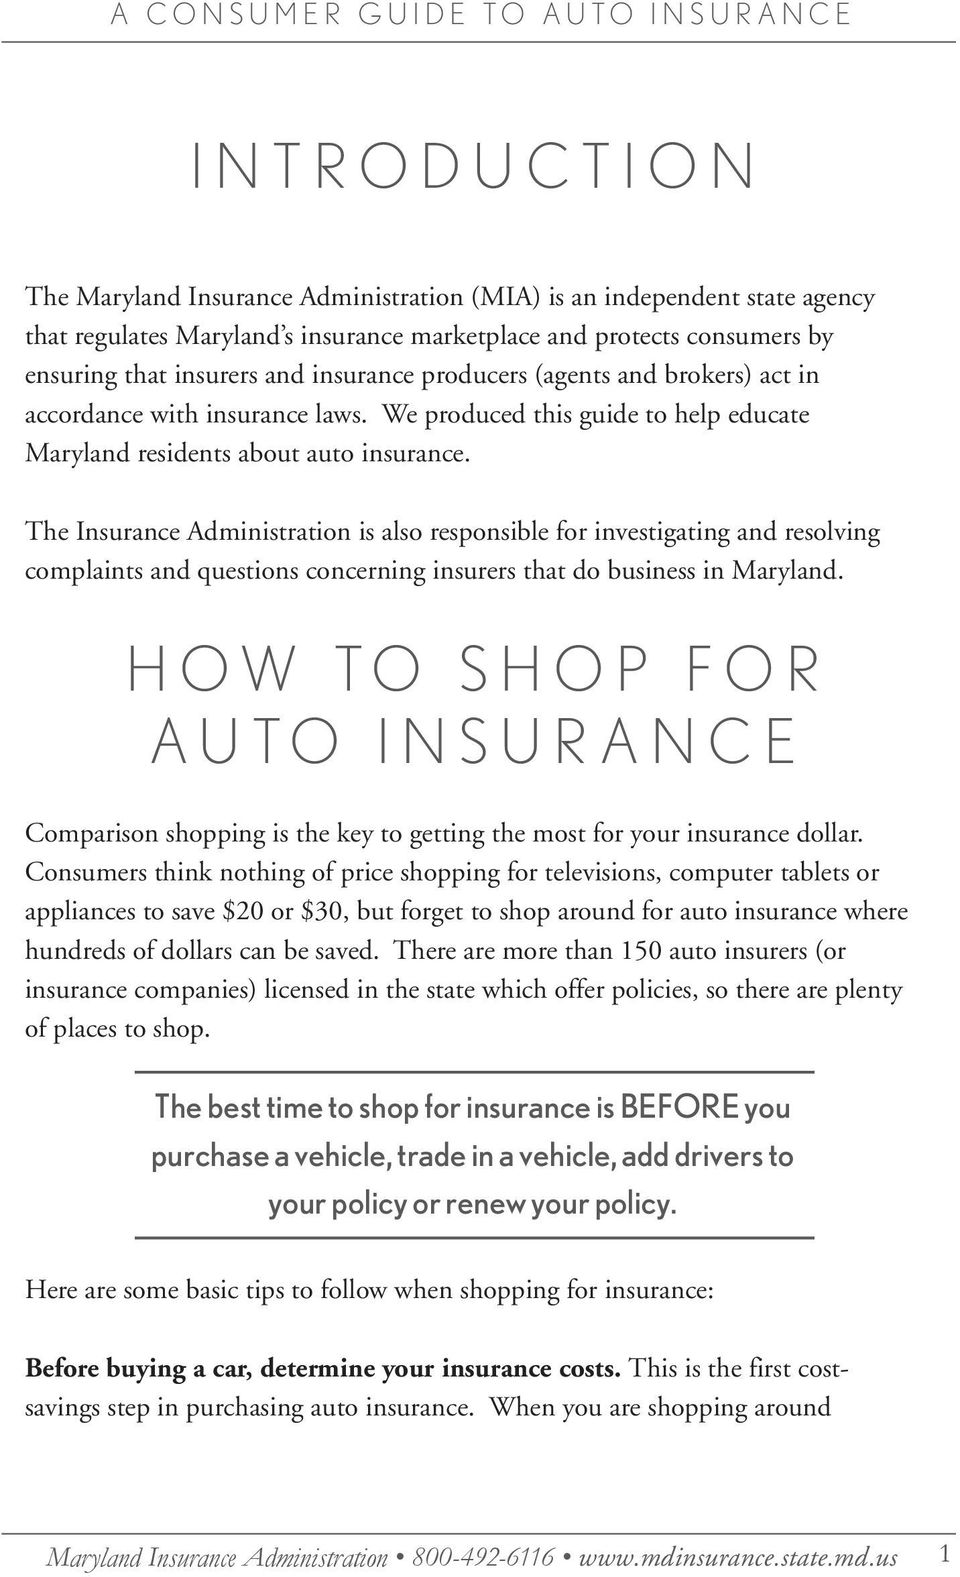 The Insurance Administration is also responsible for investigating and resolving complaints and questions concerning insurers that do business in Maryland.